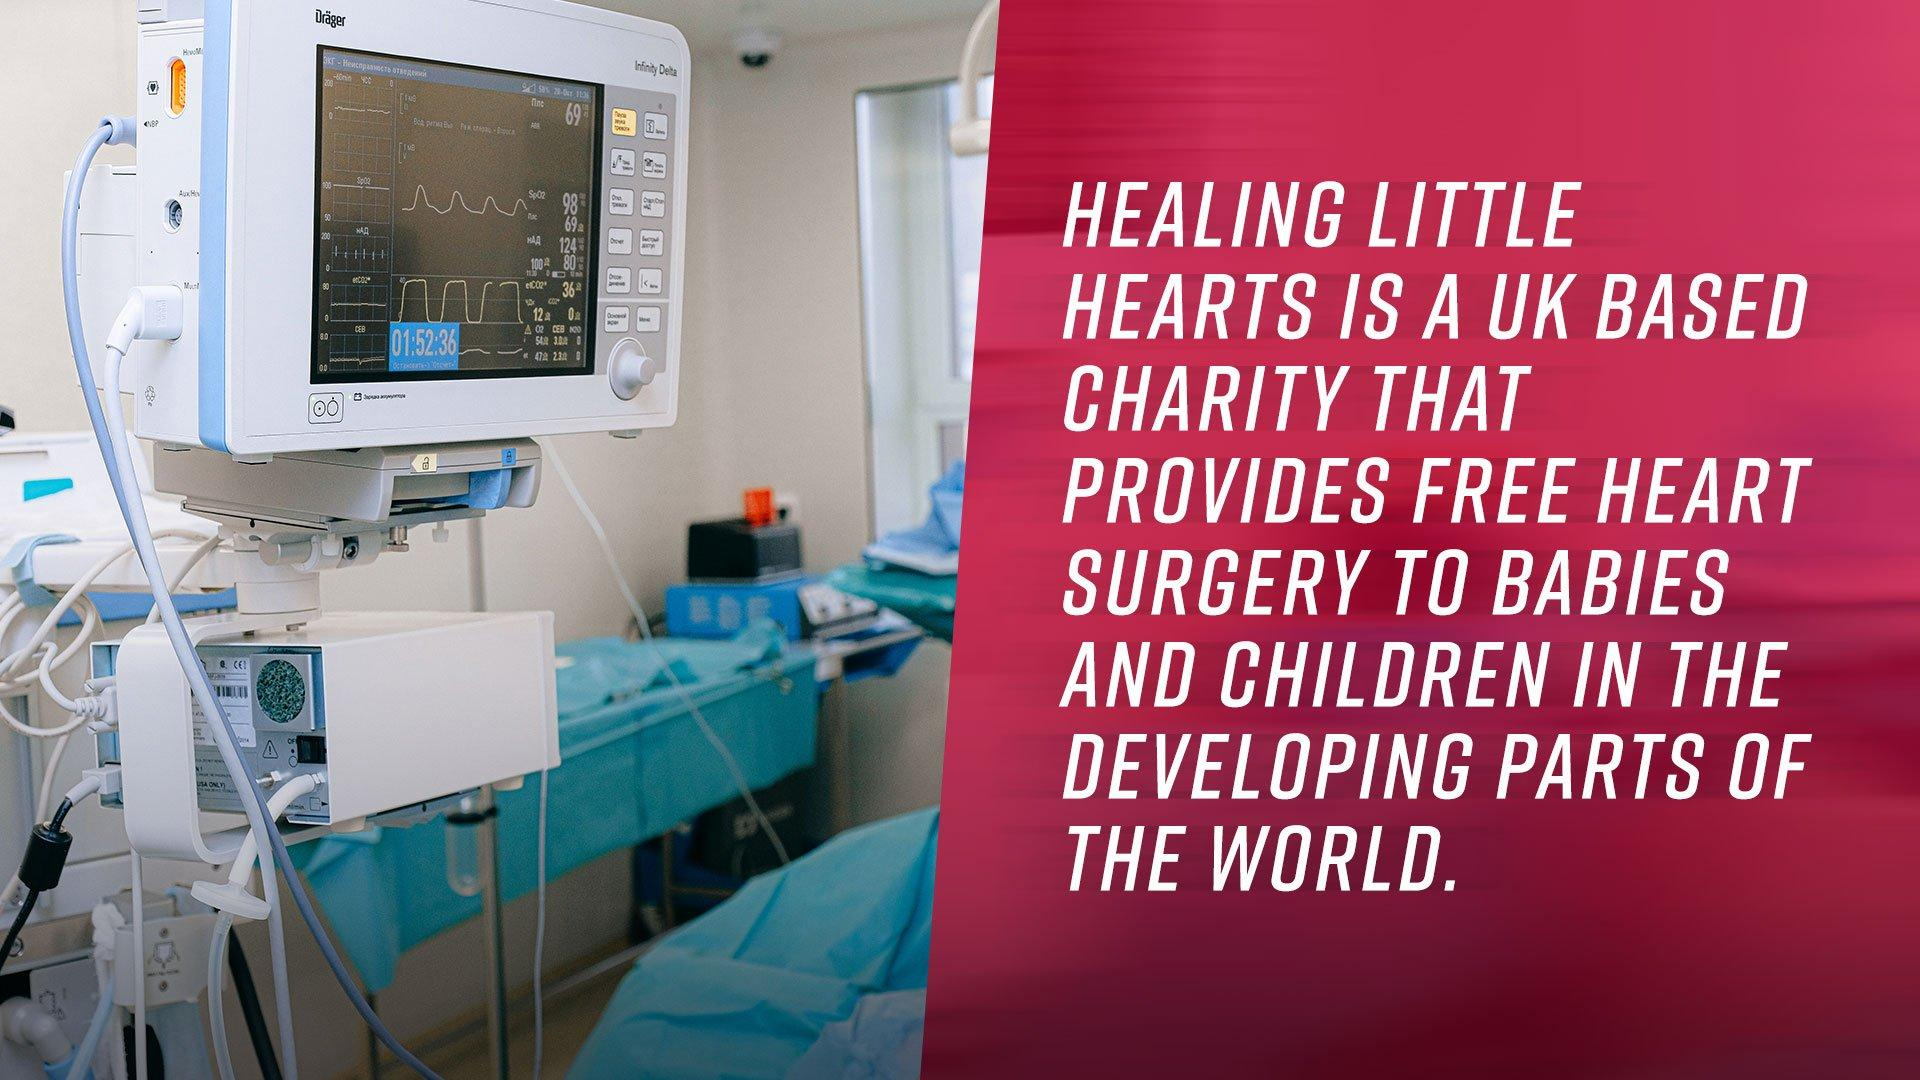 Healing Little Hearts is a UK based charity that provides FREE heart surgery to babies and children in the developing parts of the world.